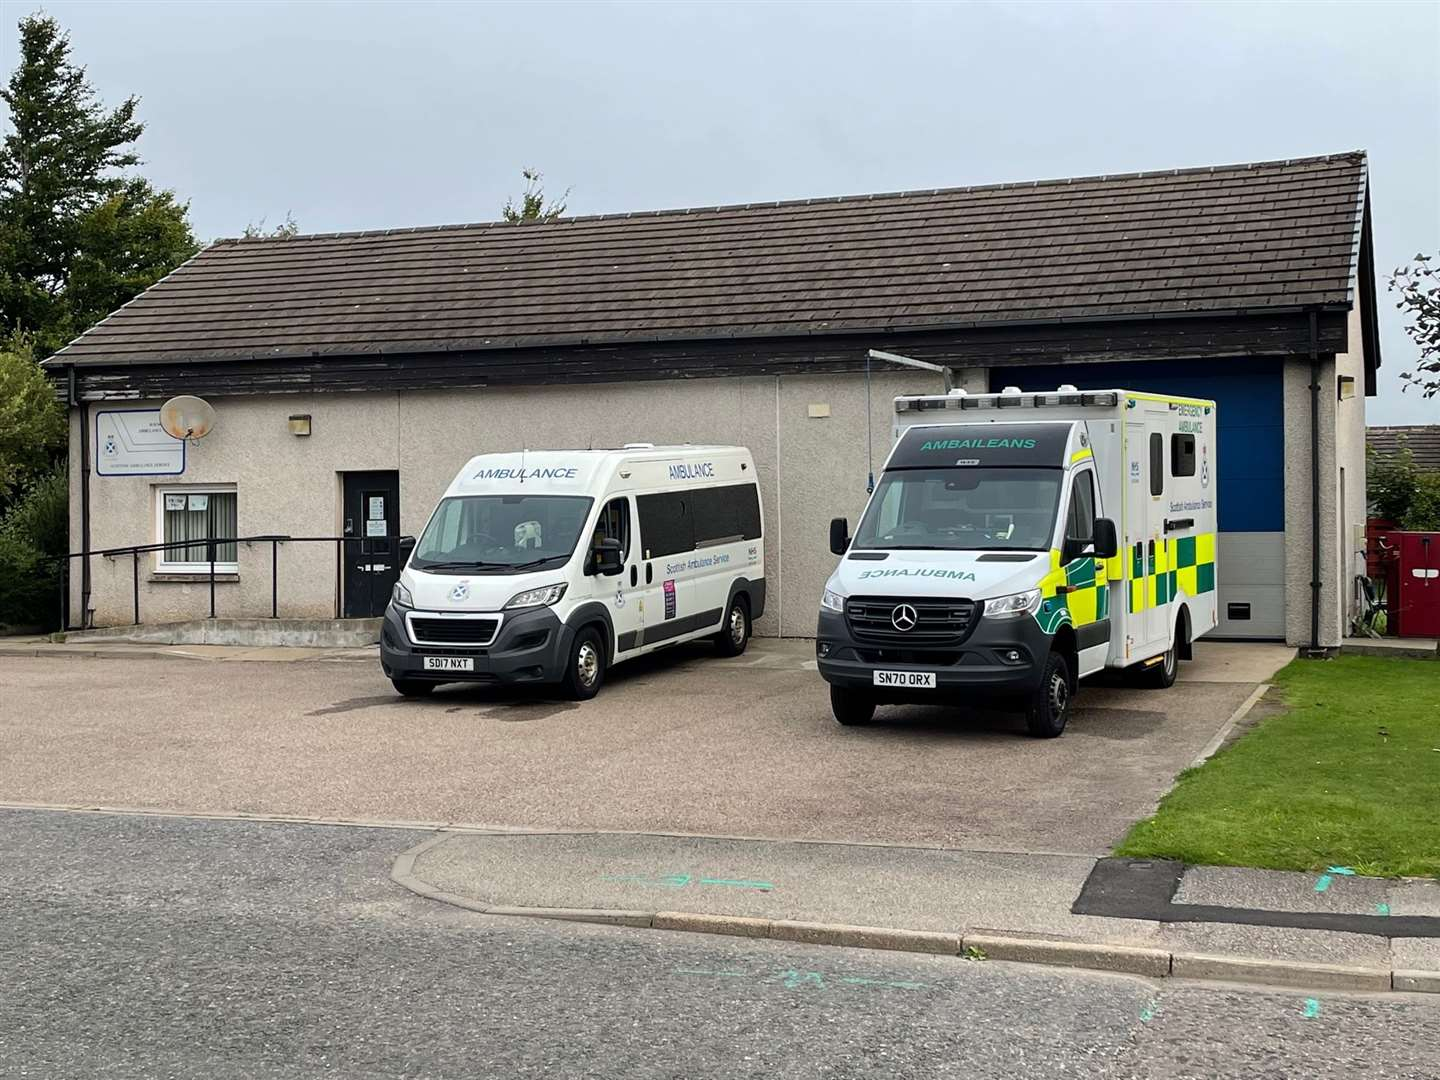 Aviemore's ambulance station which went from on-call duty to shift work earlier this year.